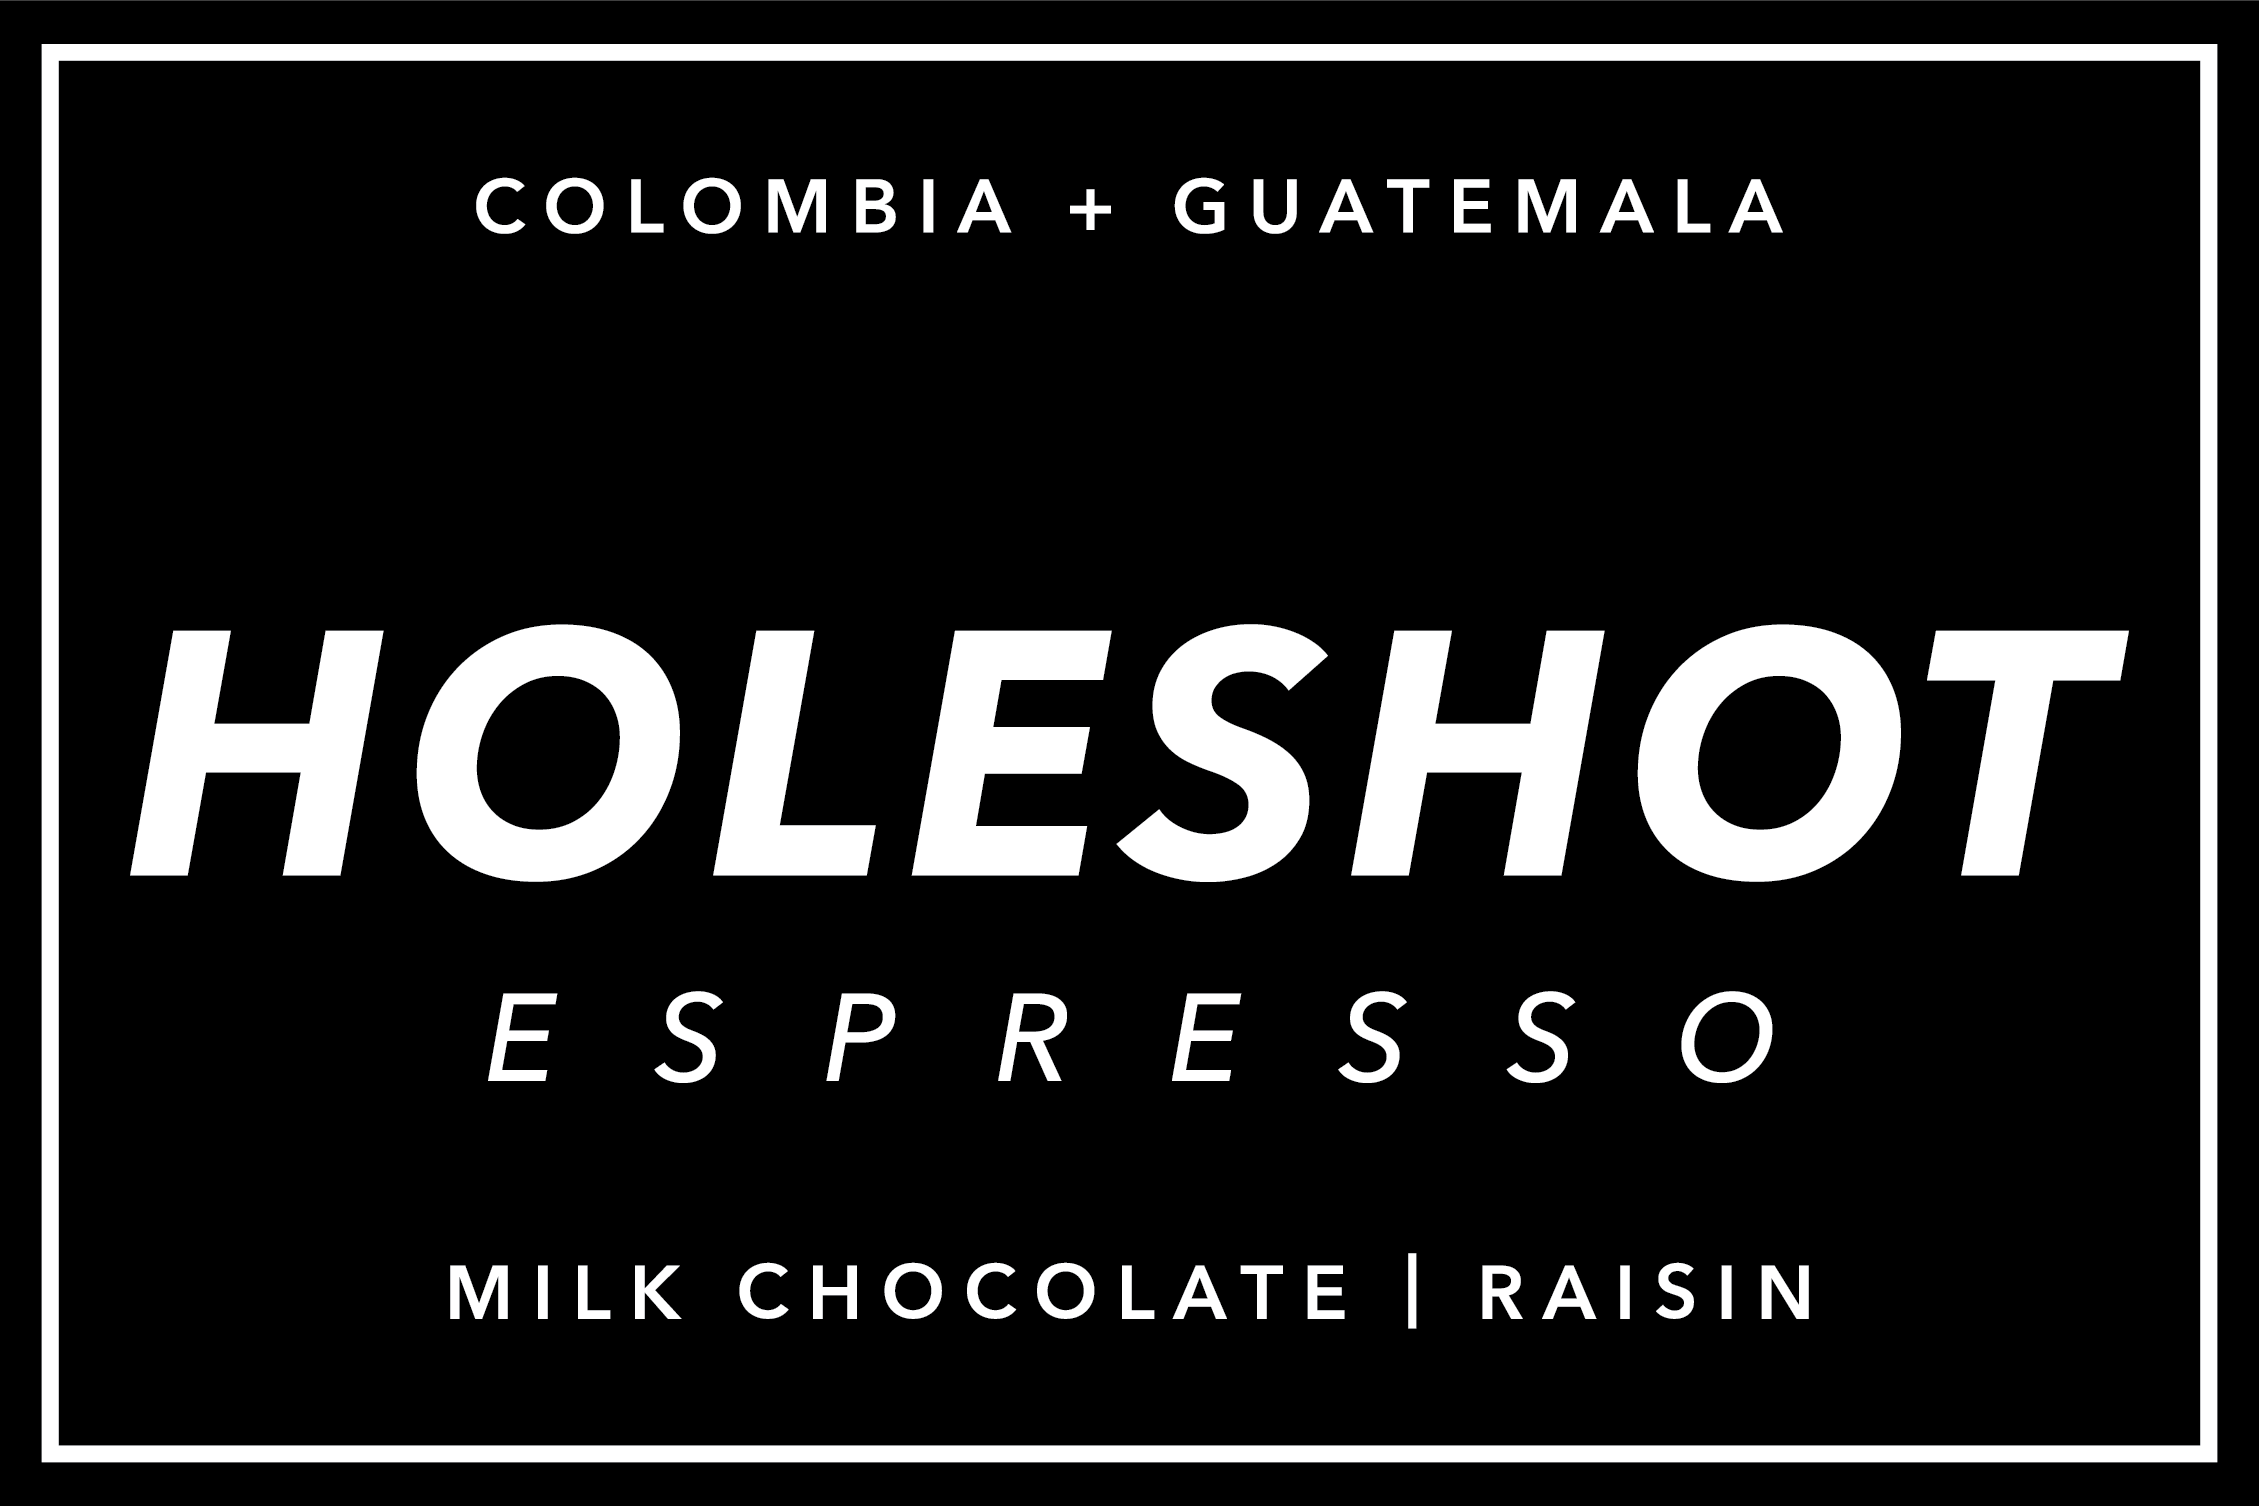 RD Coffee - Holeshot Espresso Blend from Colombia and Guatemala